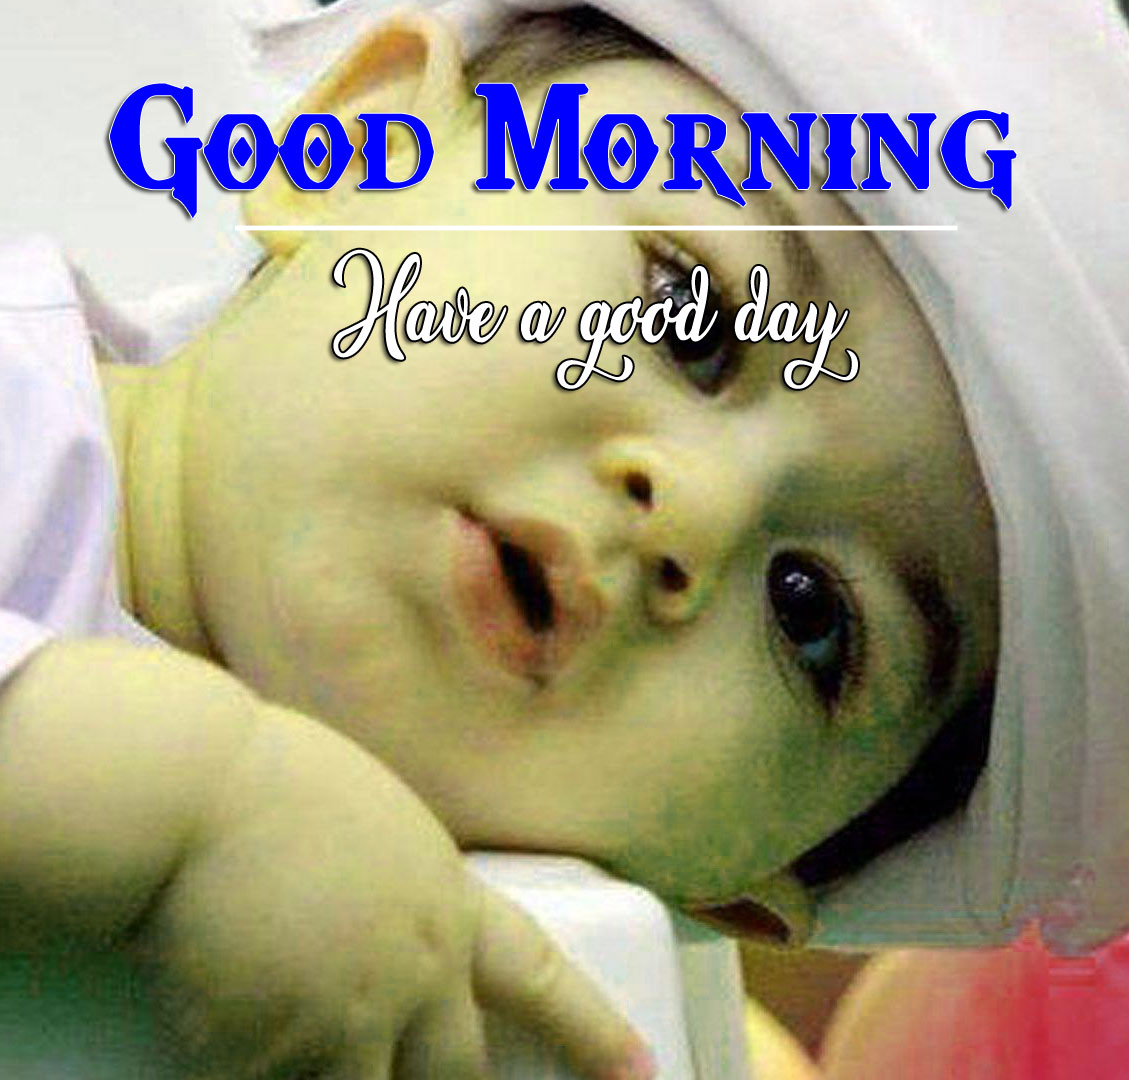 Good Morning Wishes Wallpaper With Cute Baby Boy